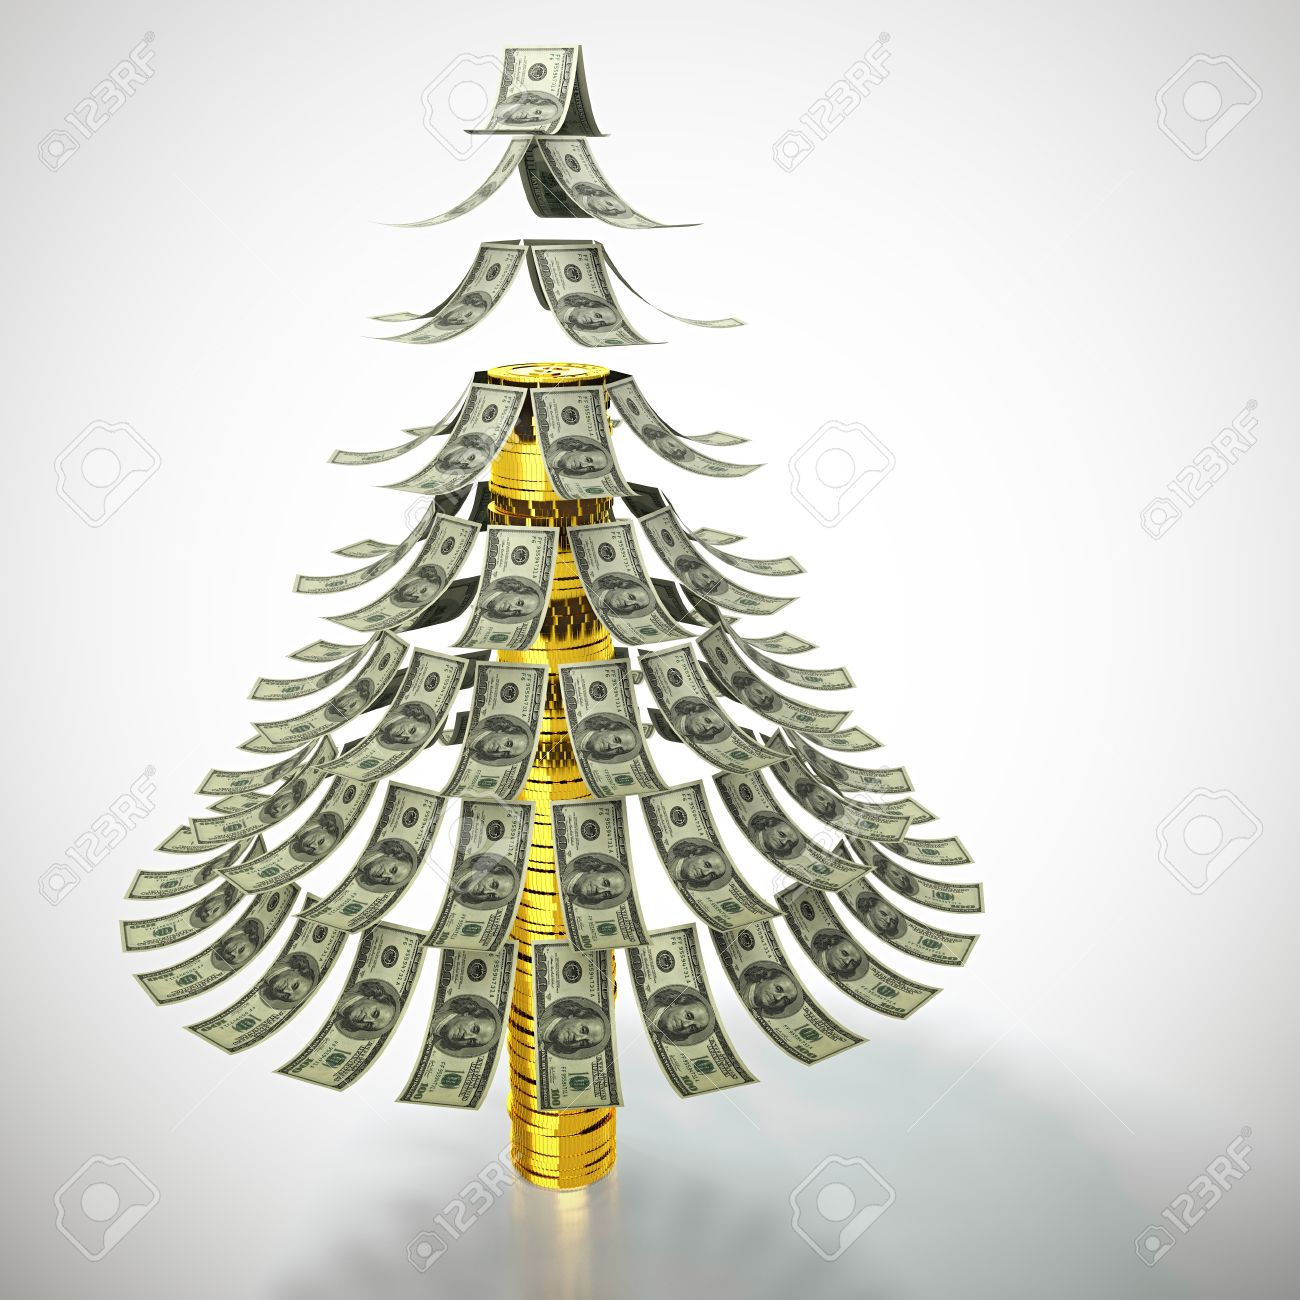 Money tree made of dollar bills and with trunk made of golden coins Stock Photo - 13514460